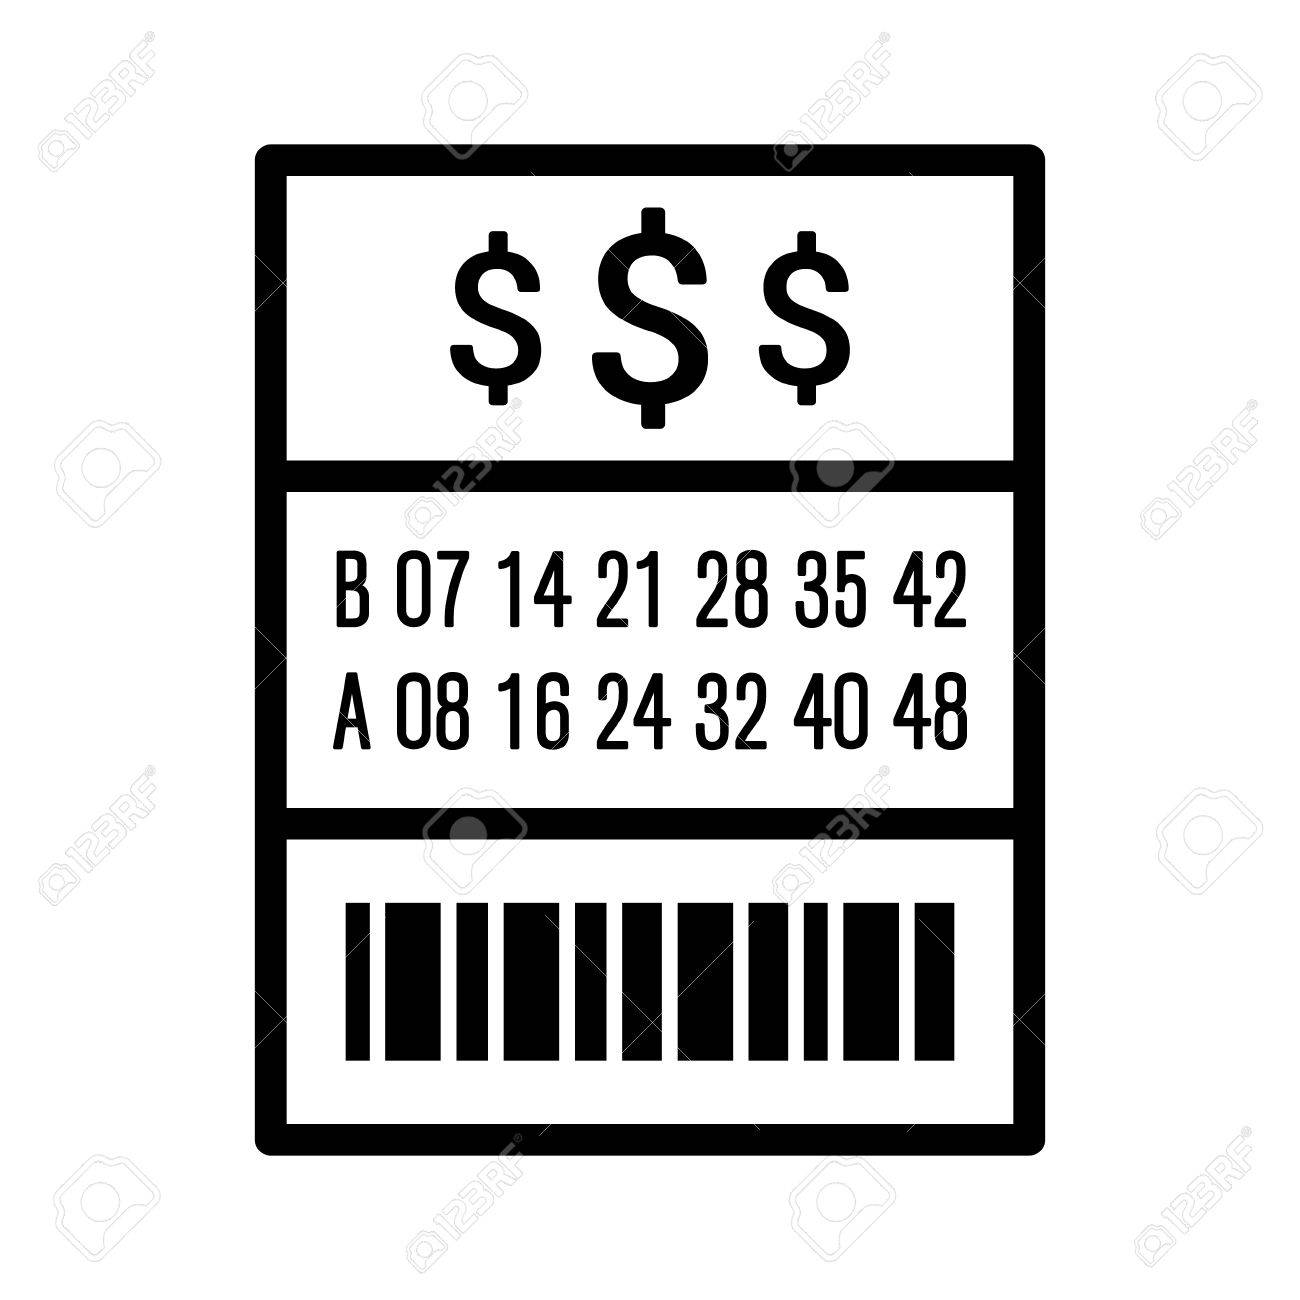 American lottery / lotto ticket line art vector icon for websites.